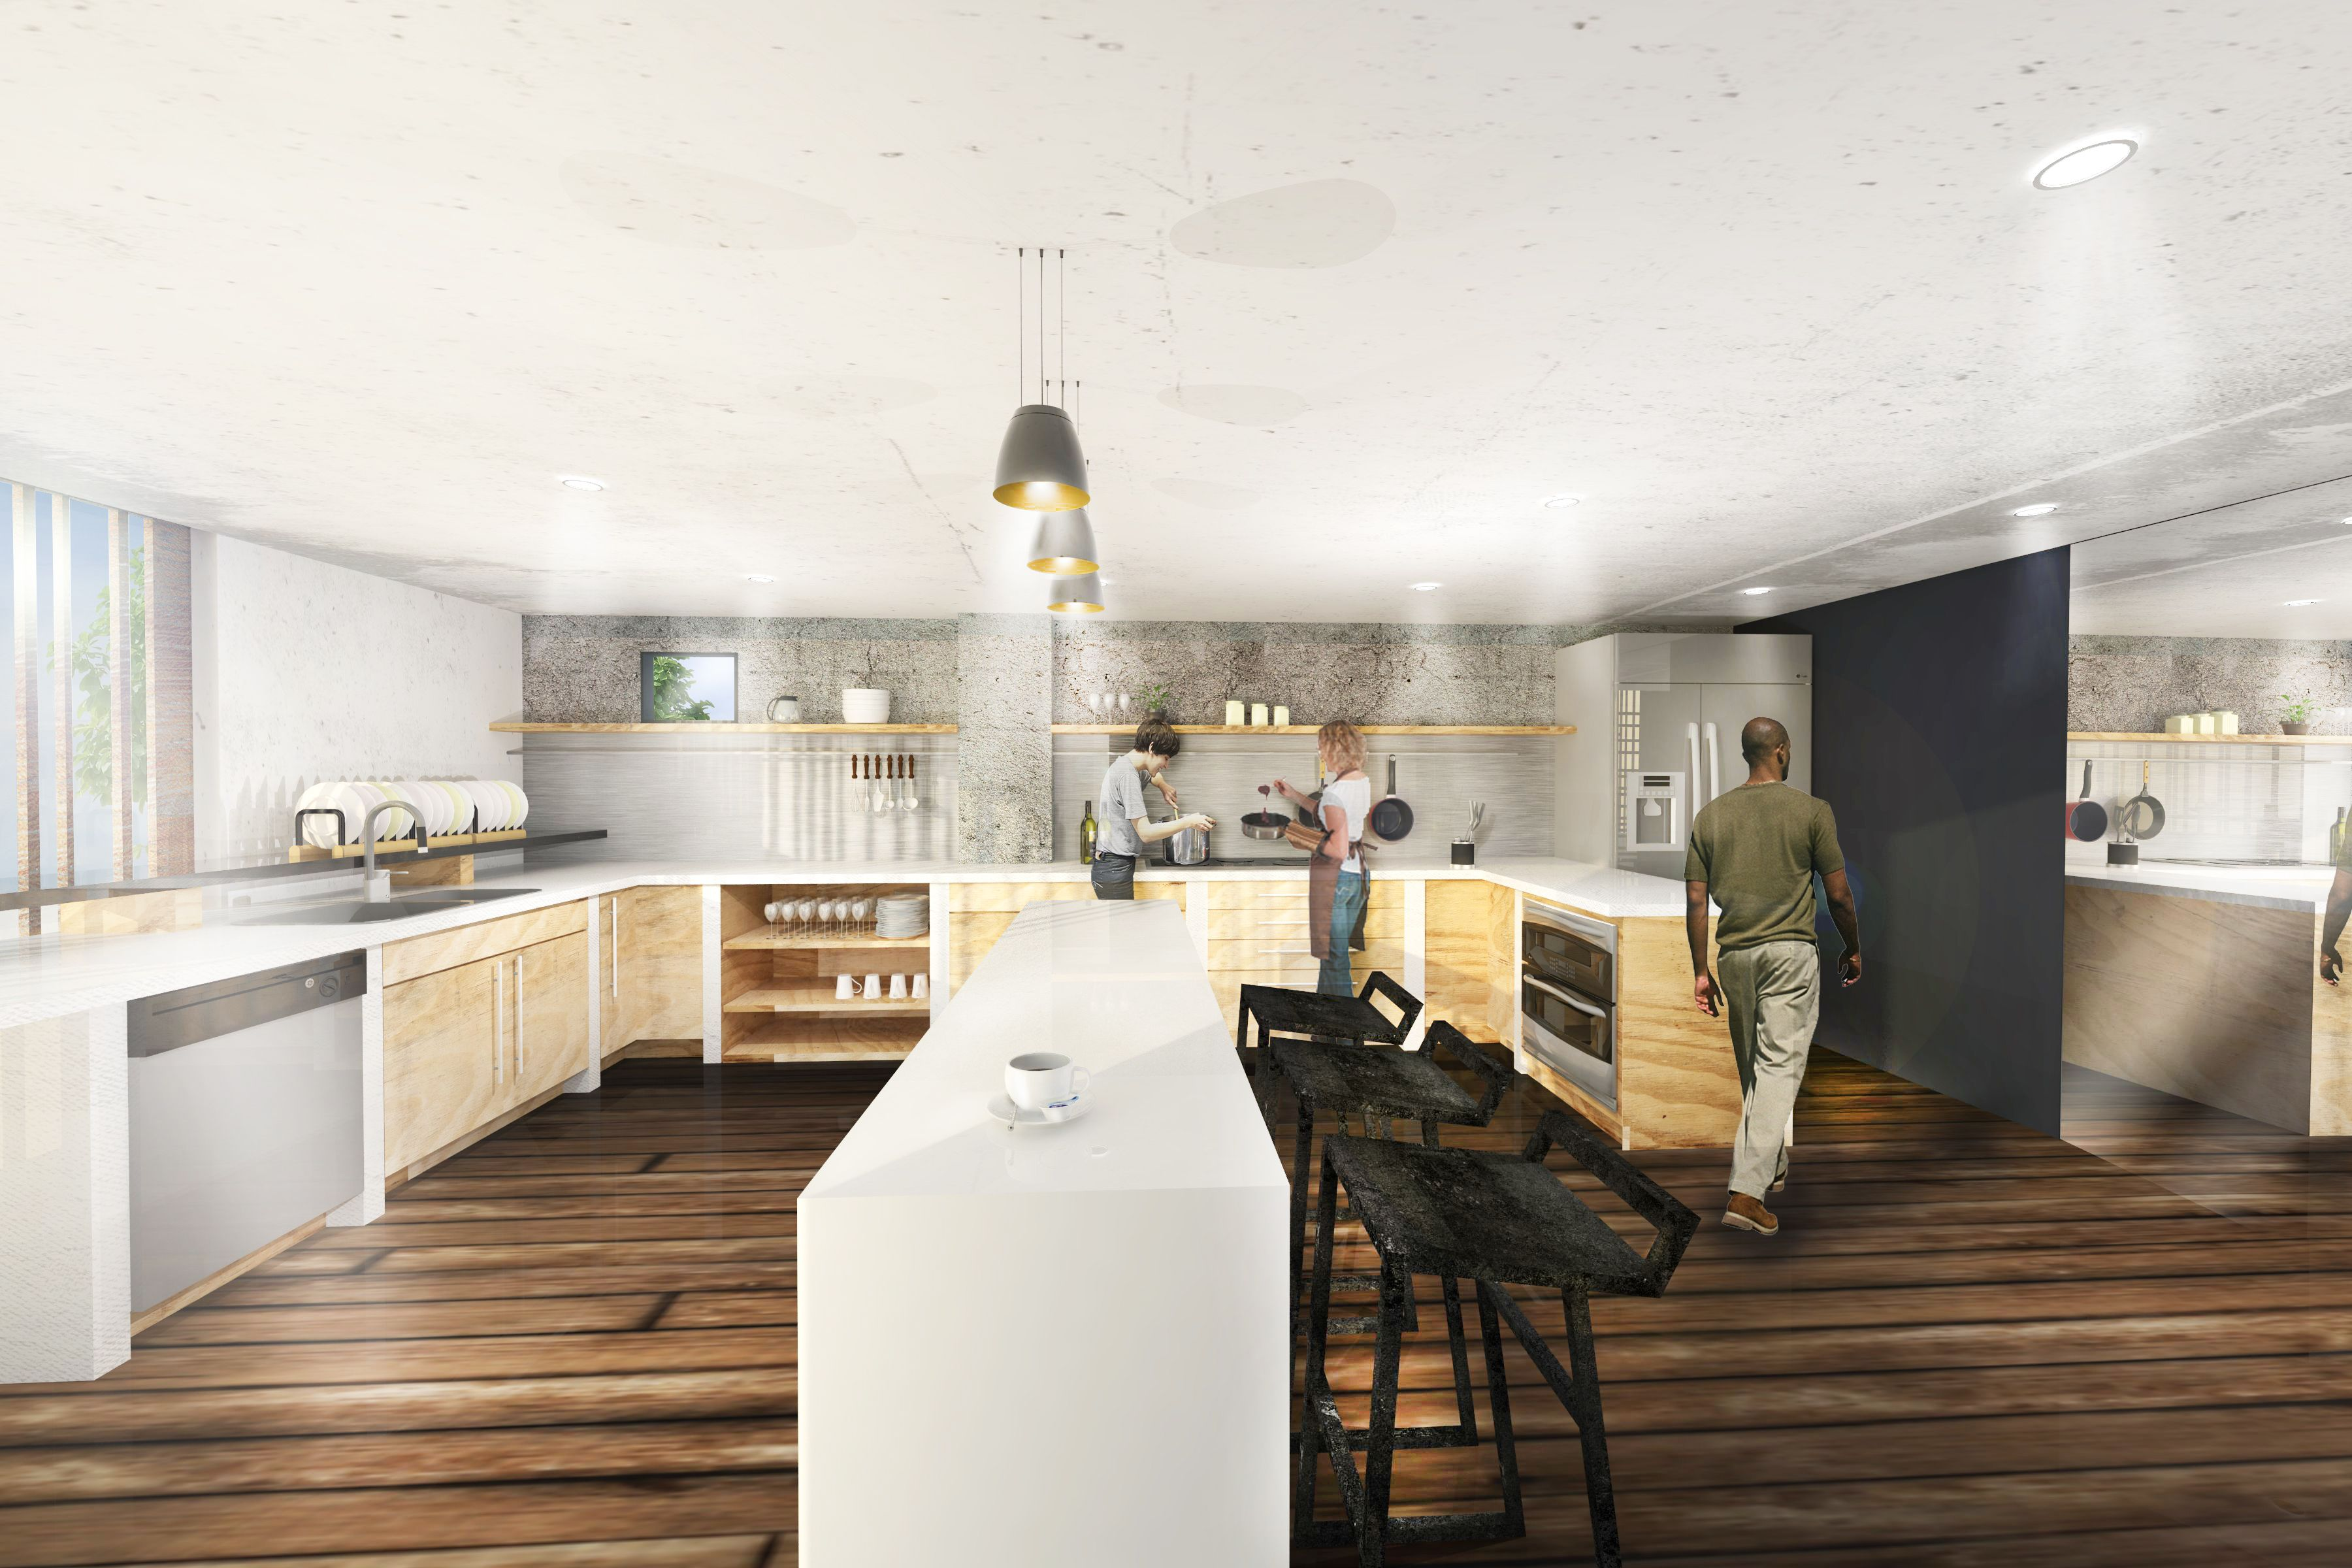 Design Project About Hong Kong B B Kitchen Rendering Designed